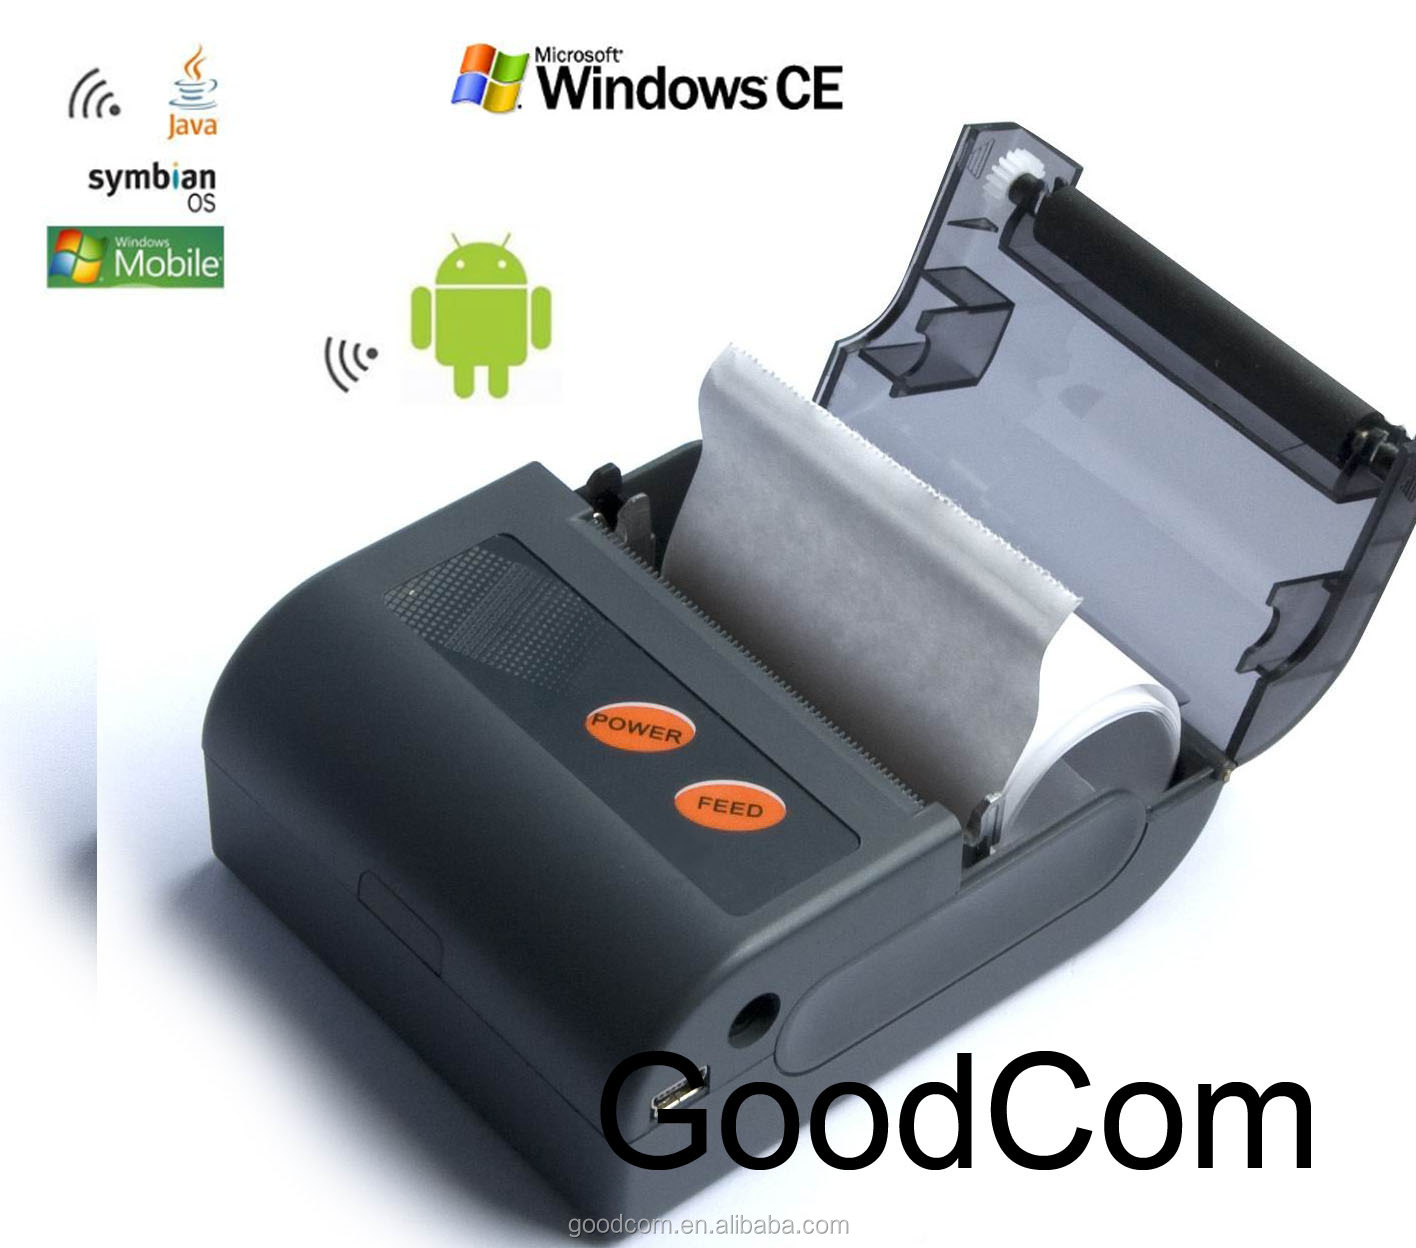 Portable Bluetooth Thermal Printer/ Handheld Mobile Mini Printer with Free SDK&Test Printing Software